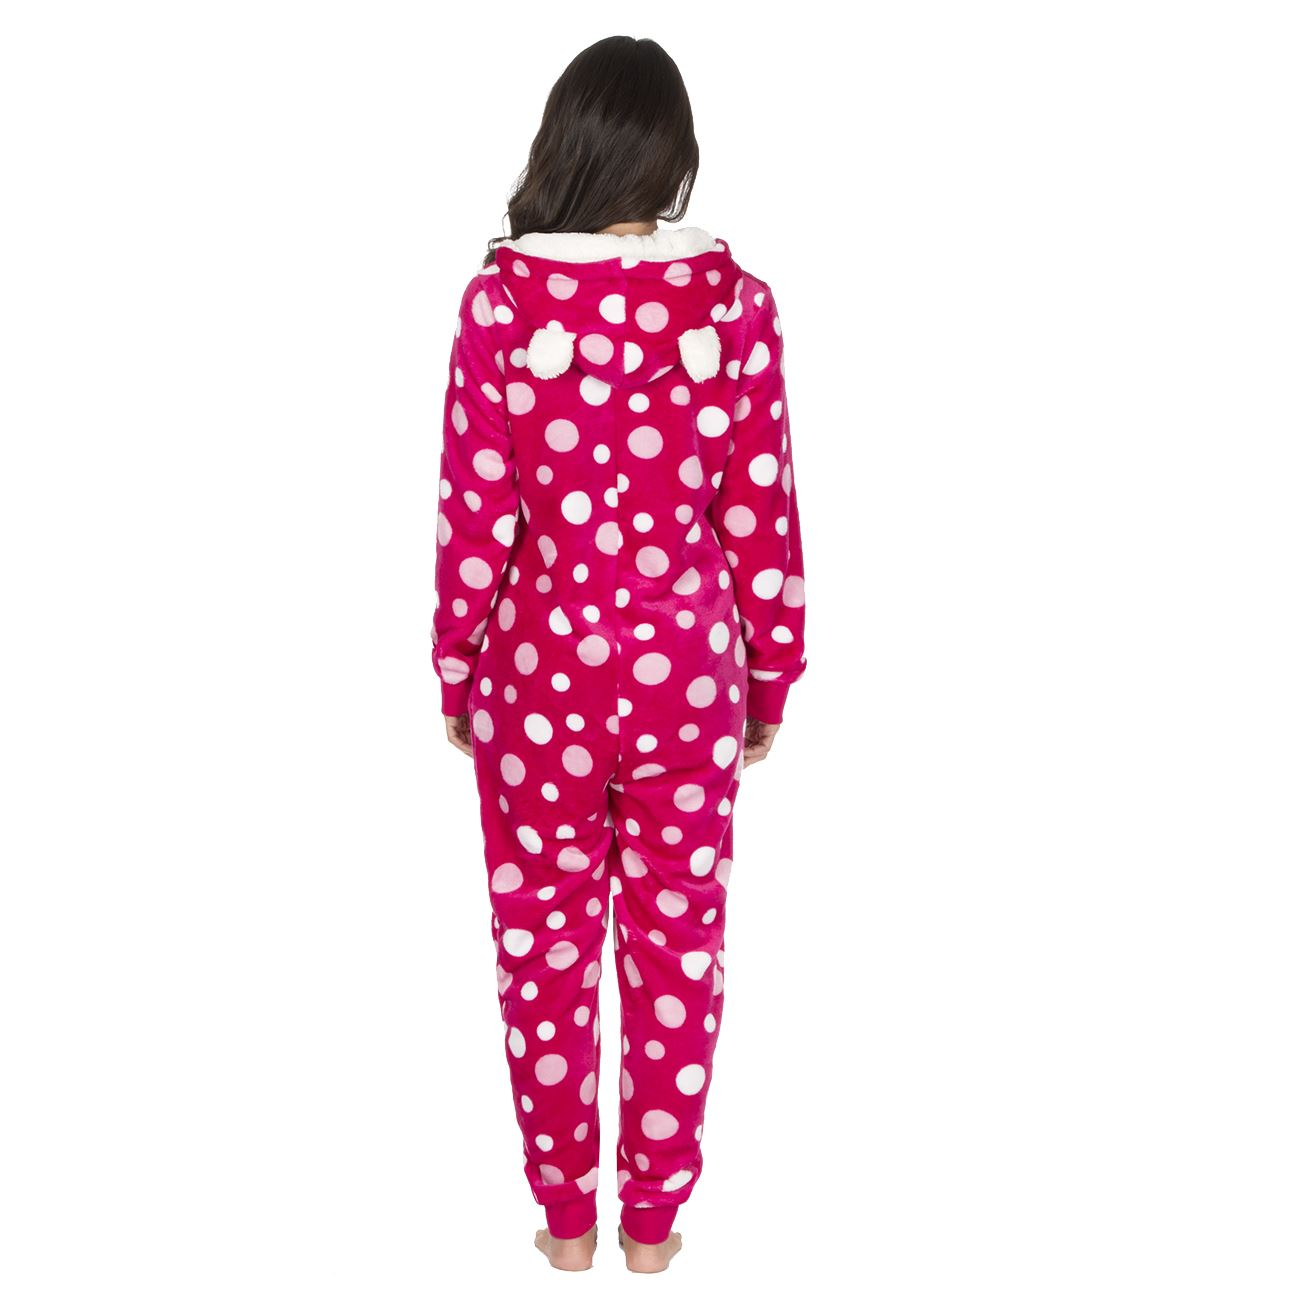 Ladies-Womens-Girls-Fleece-All-In-One-Pyjamas-Outfit-Jumpsuit-Costume-Size-6-18 thumbnail 31